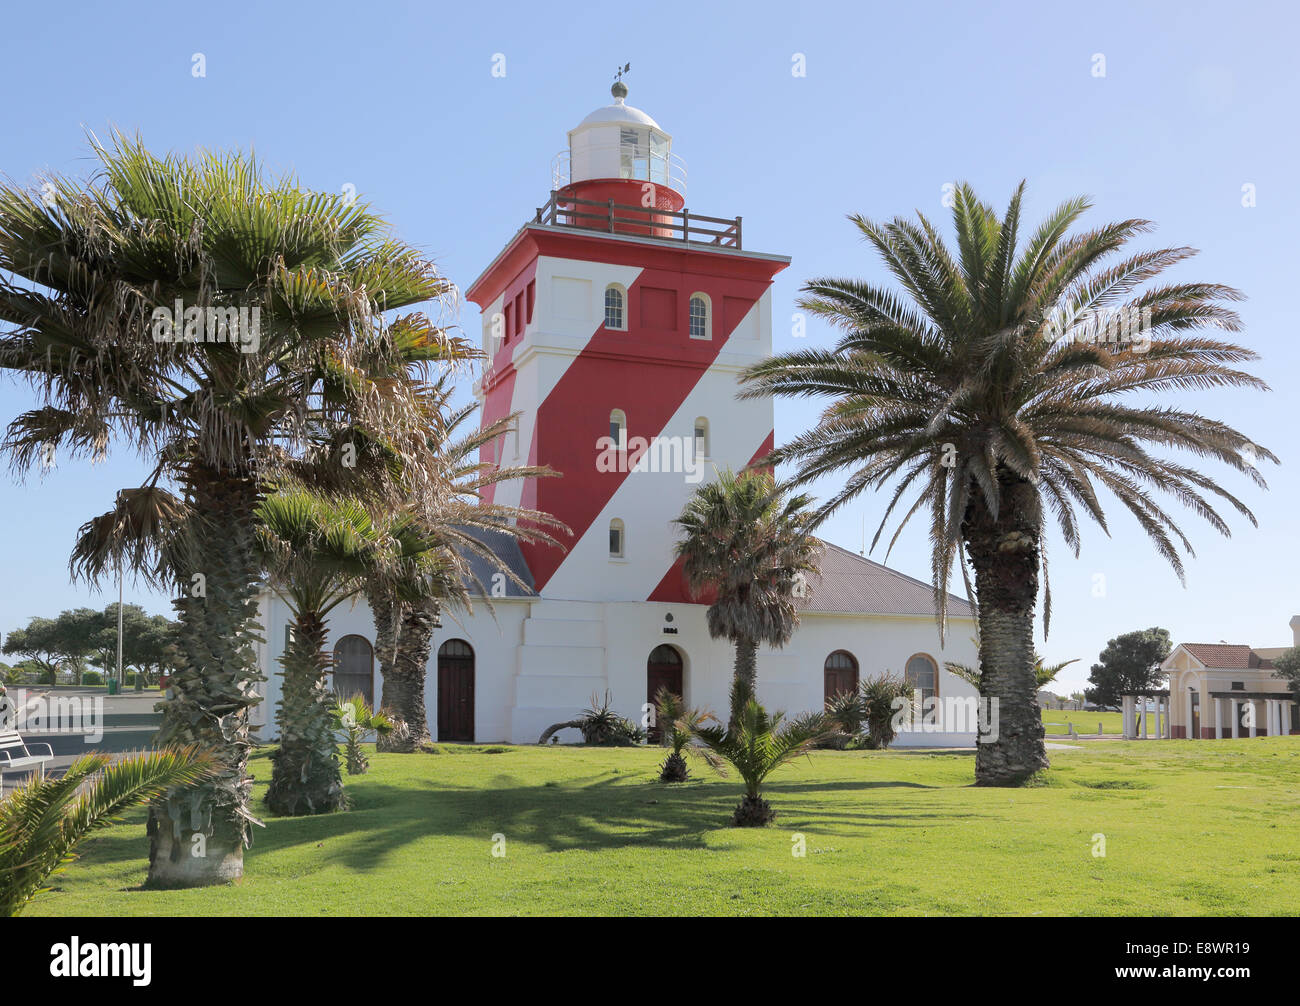 Mouille point phare de green point Cape town Photo Stock